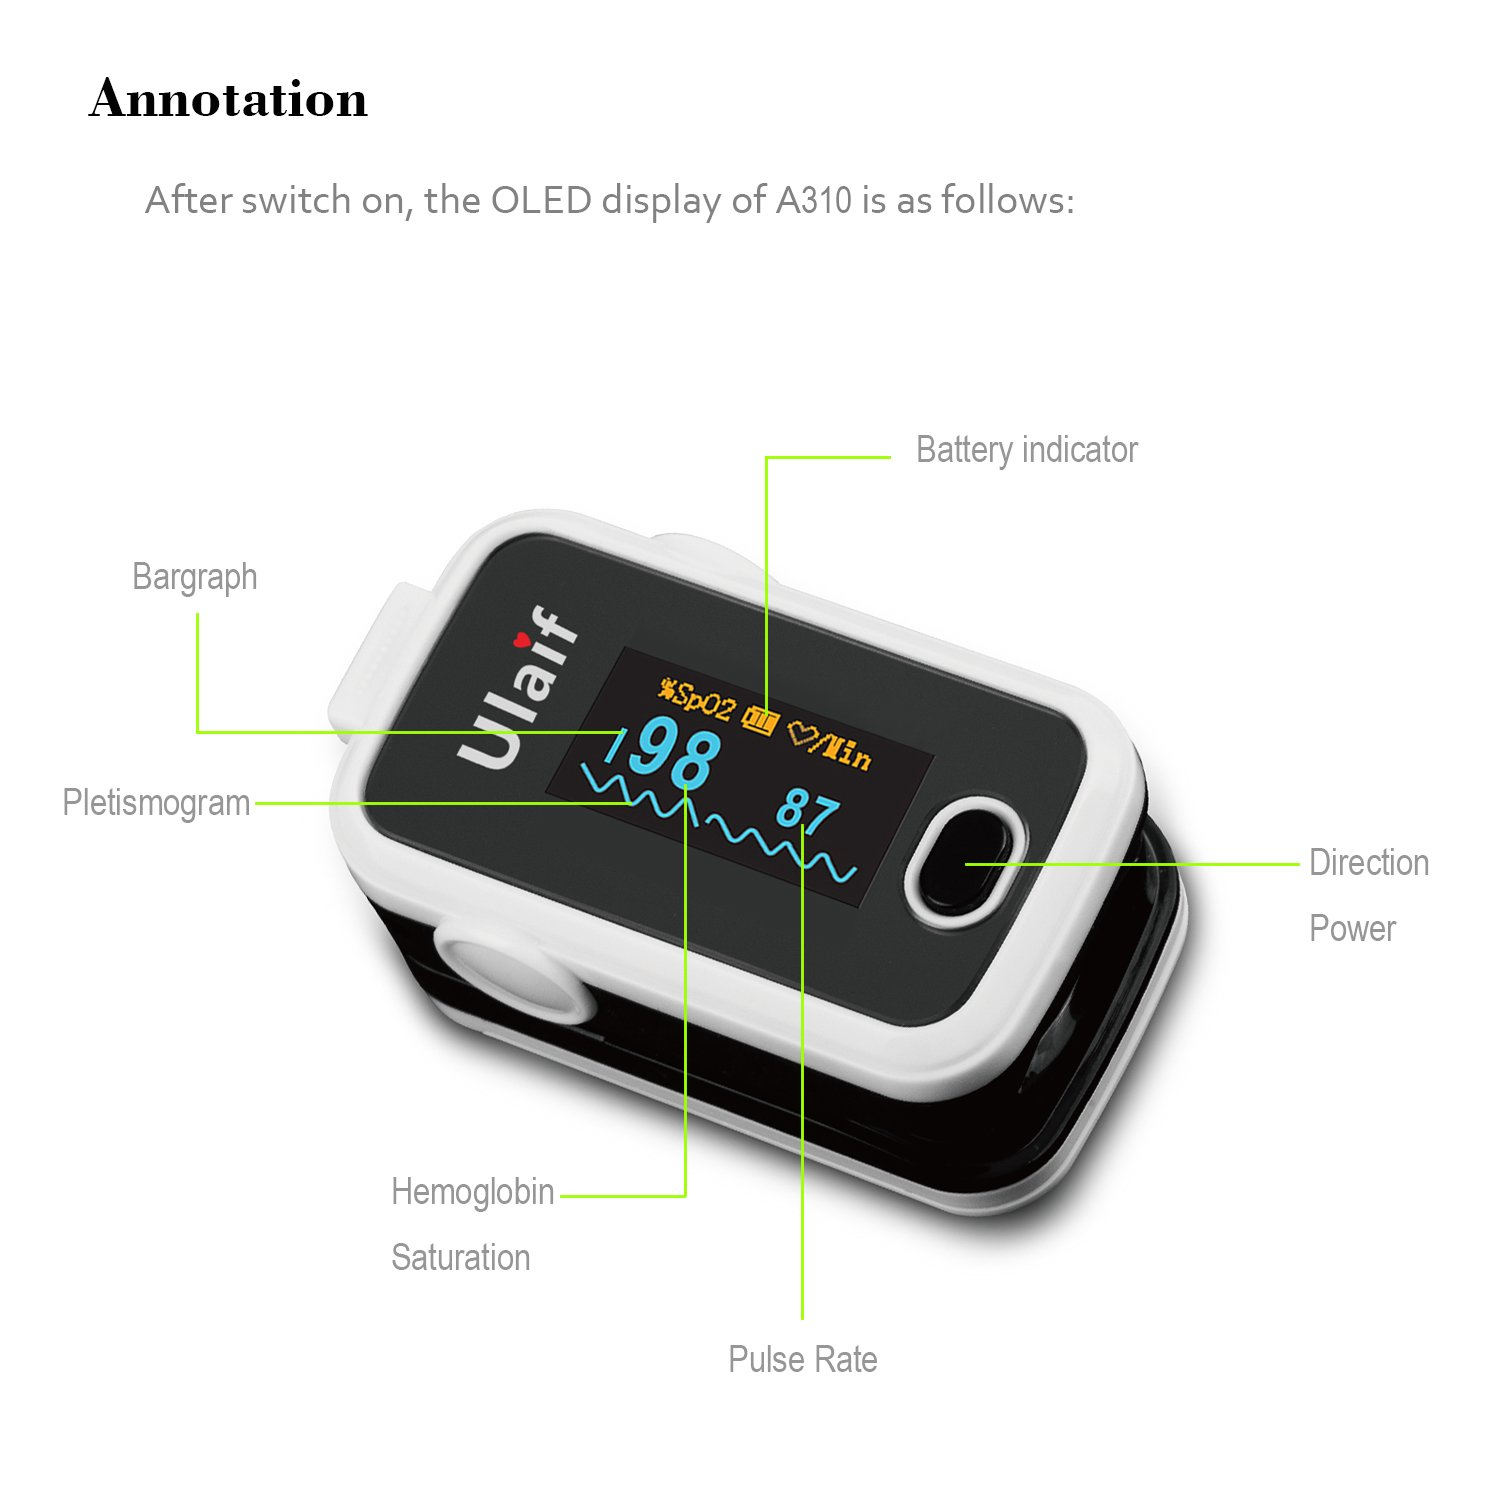 ULAIF Fingertip Pulse Oximeter with OLED Display Portable Oximetry Blood  Oxygen Saturation Monitor SpO2 Finger Pulse Oximeter Readings with Carrying